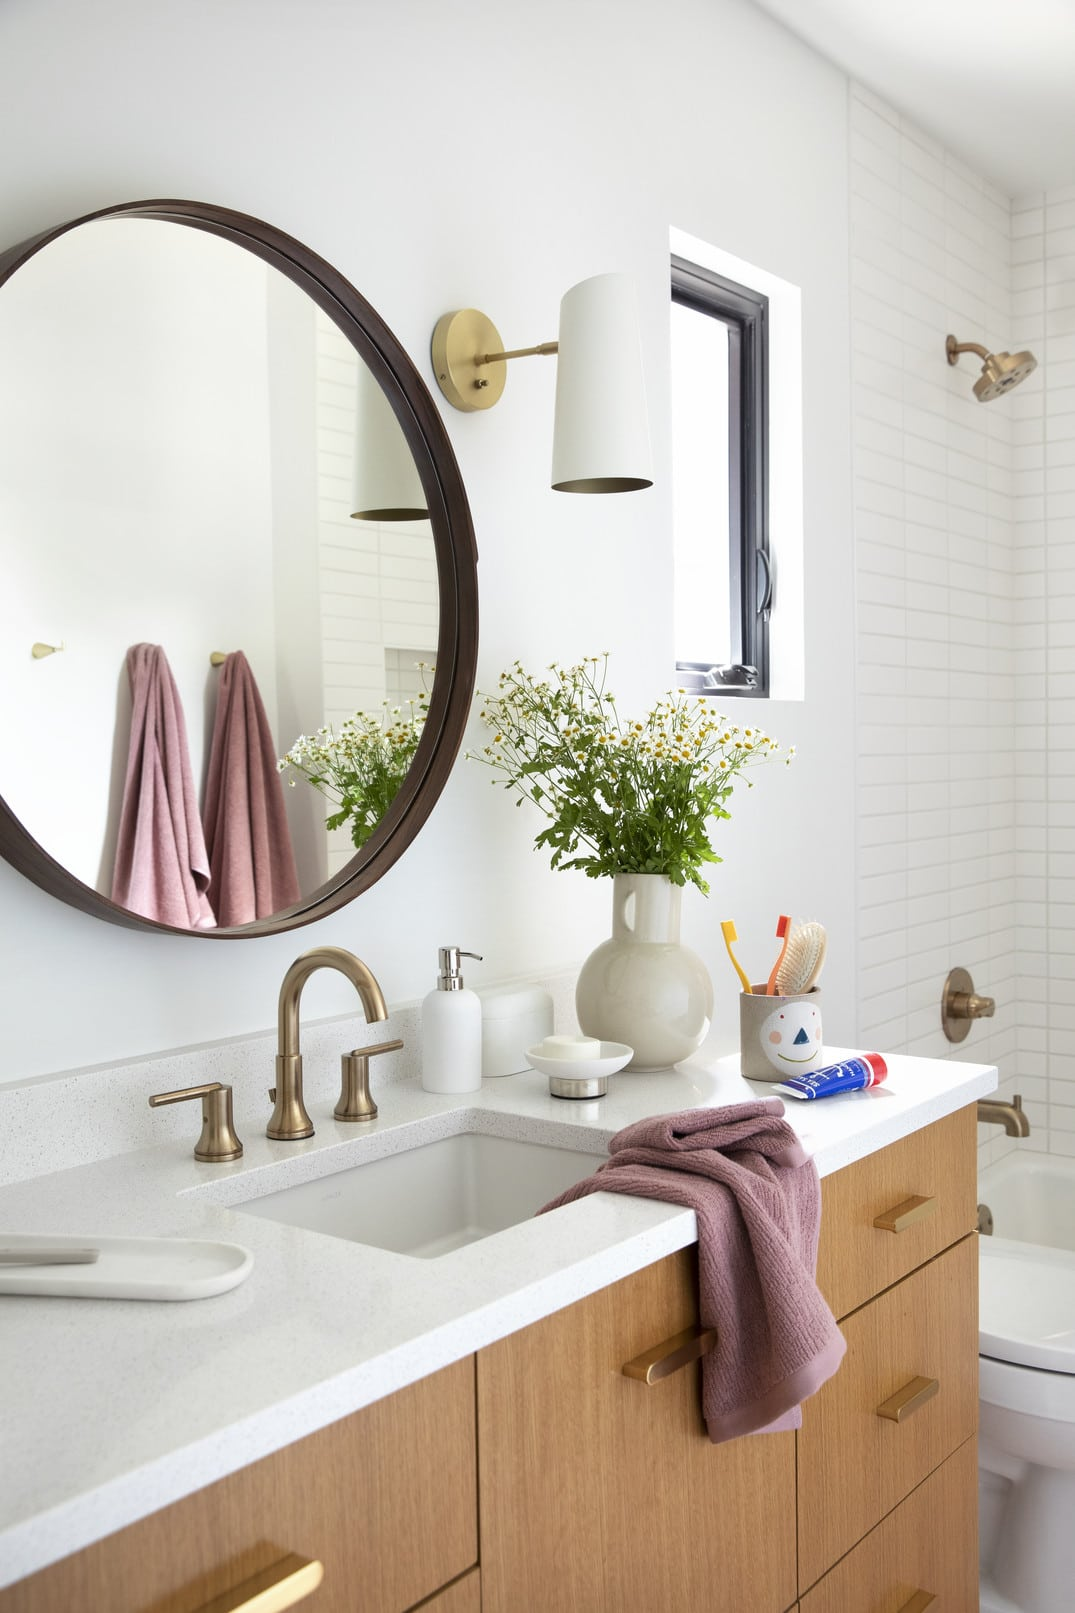 Our West Elm Bedroom And Bathroom Collaboration The Effortless Chic